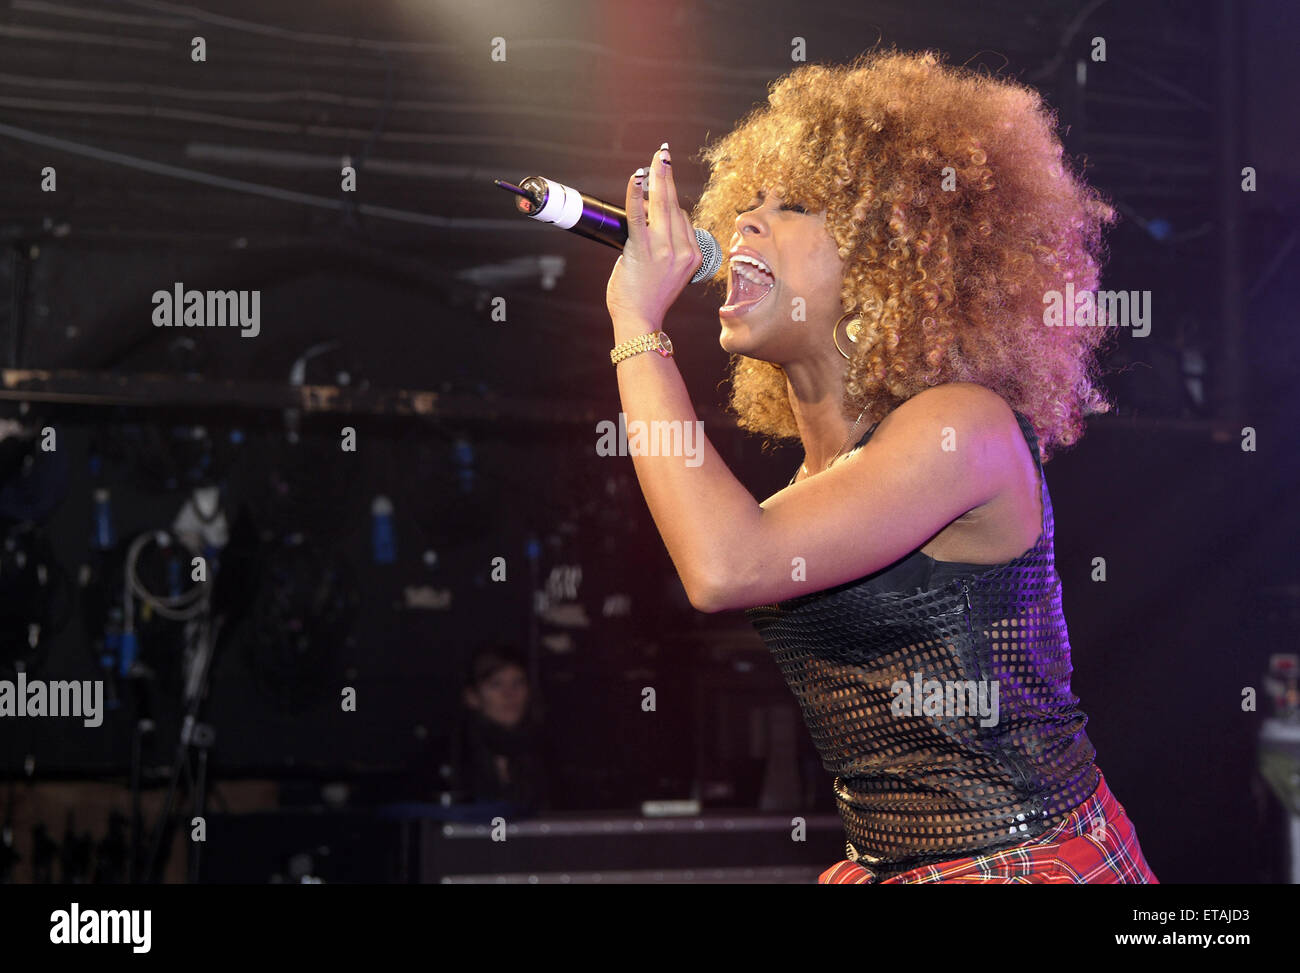 The X Factor' UK runner up Fleur East performs live at G-A-Y